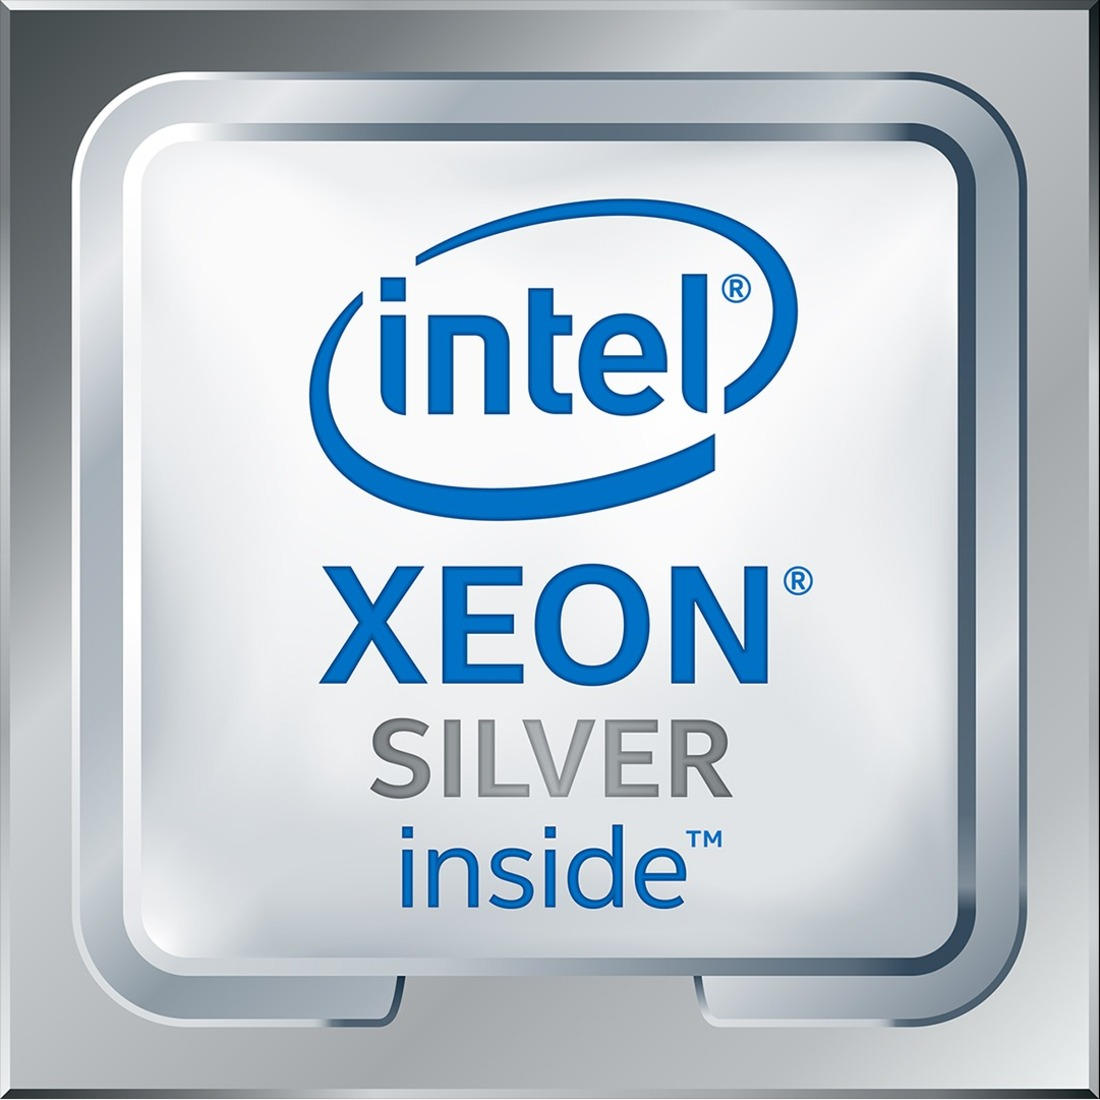 HPE DL360 Gen10 Intel Xeon-Silver 4114 (2.2GHz/10-core/85W) Processor Kit 860657-B21